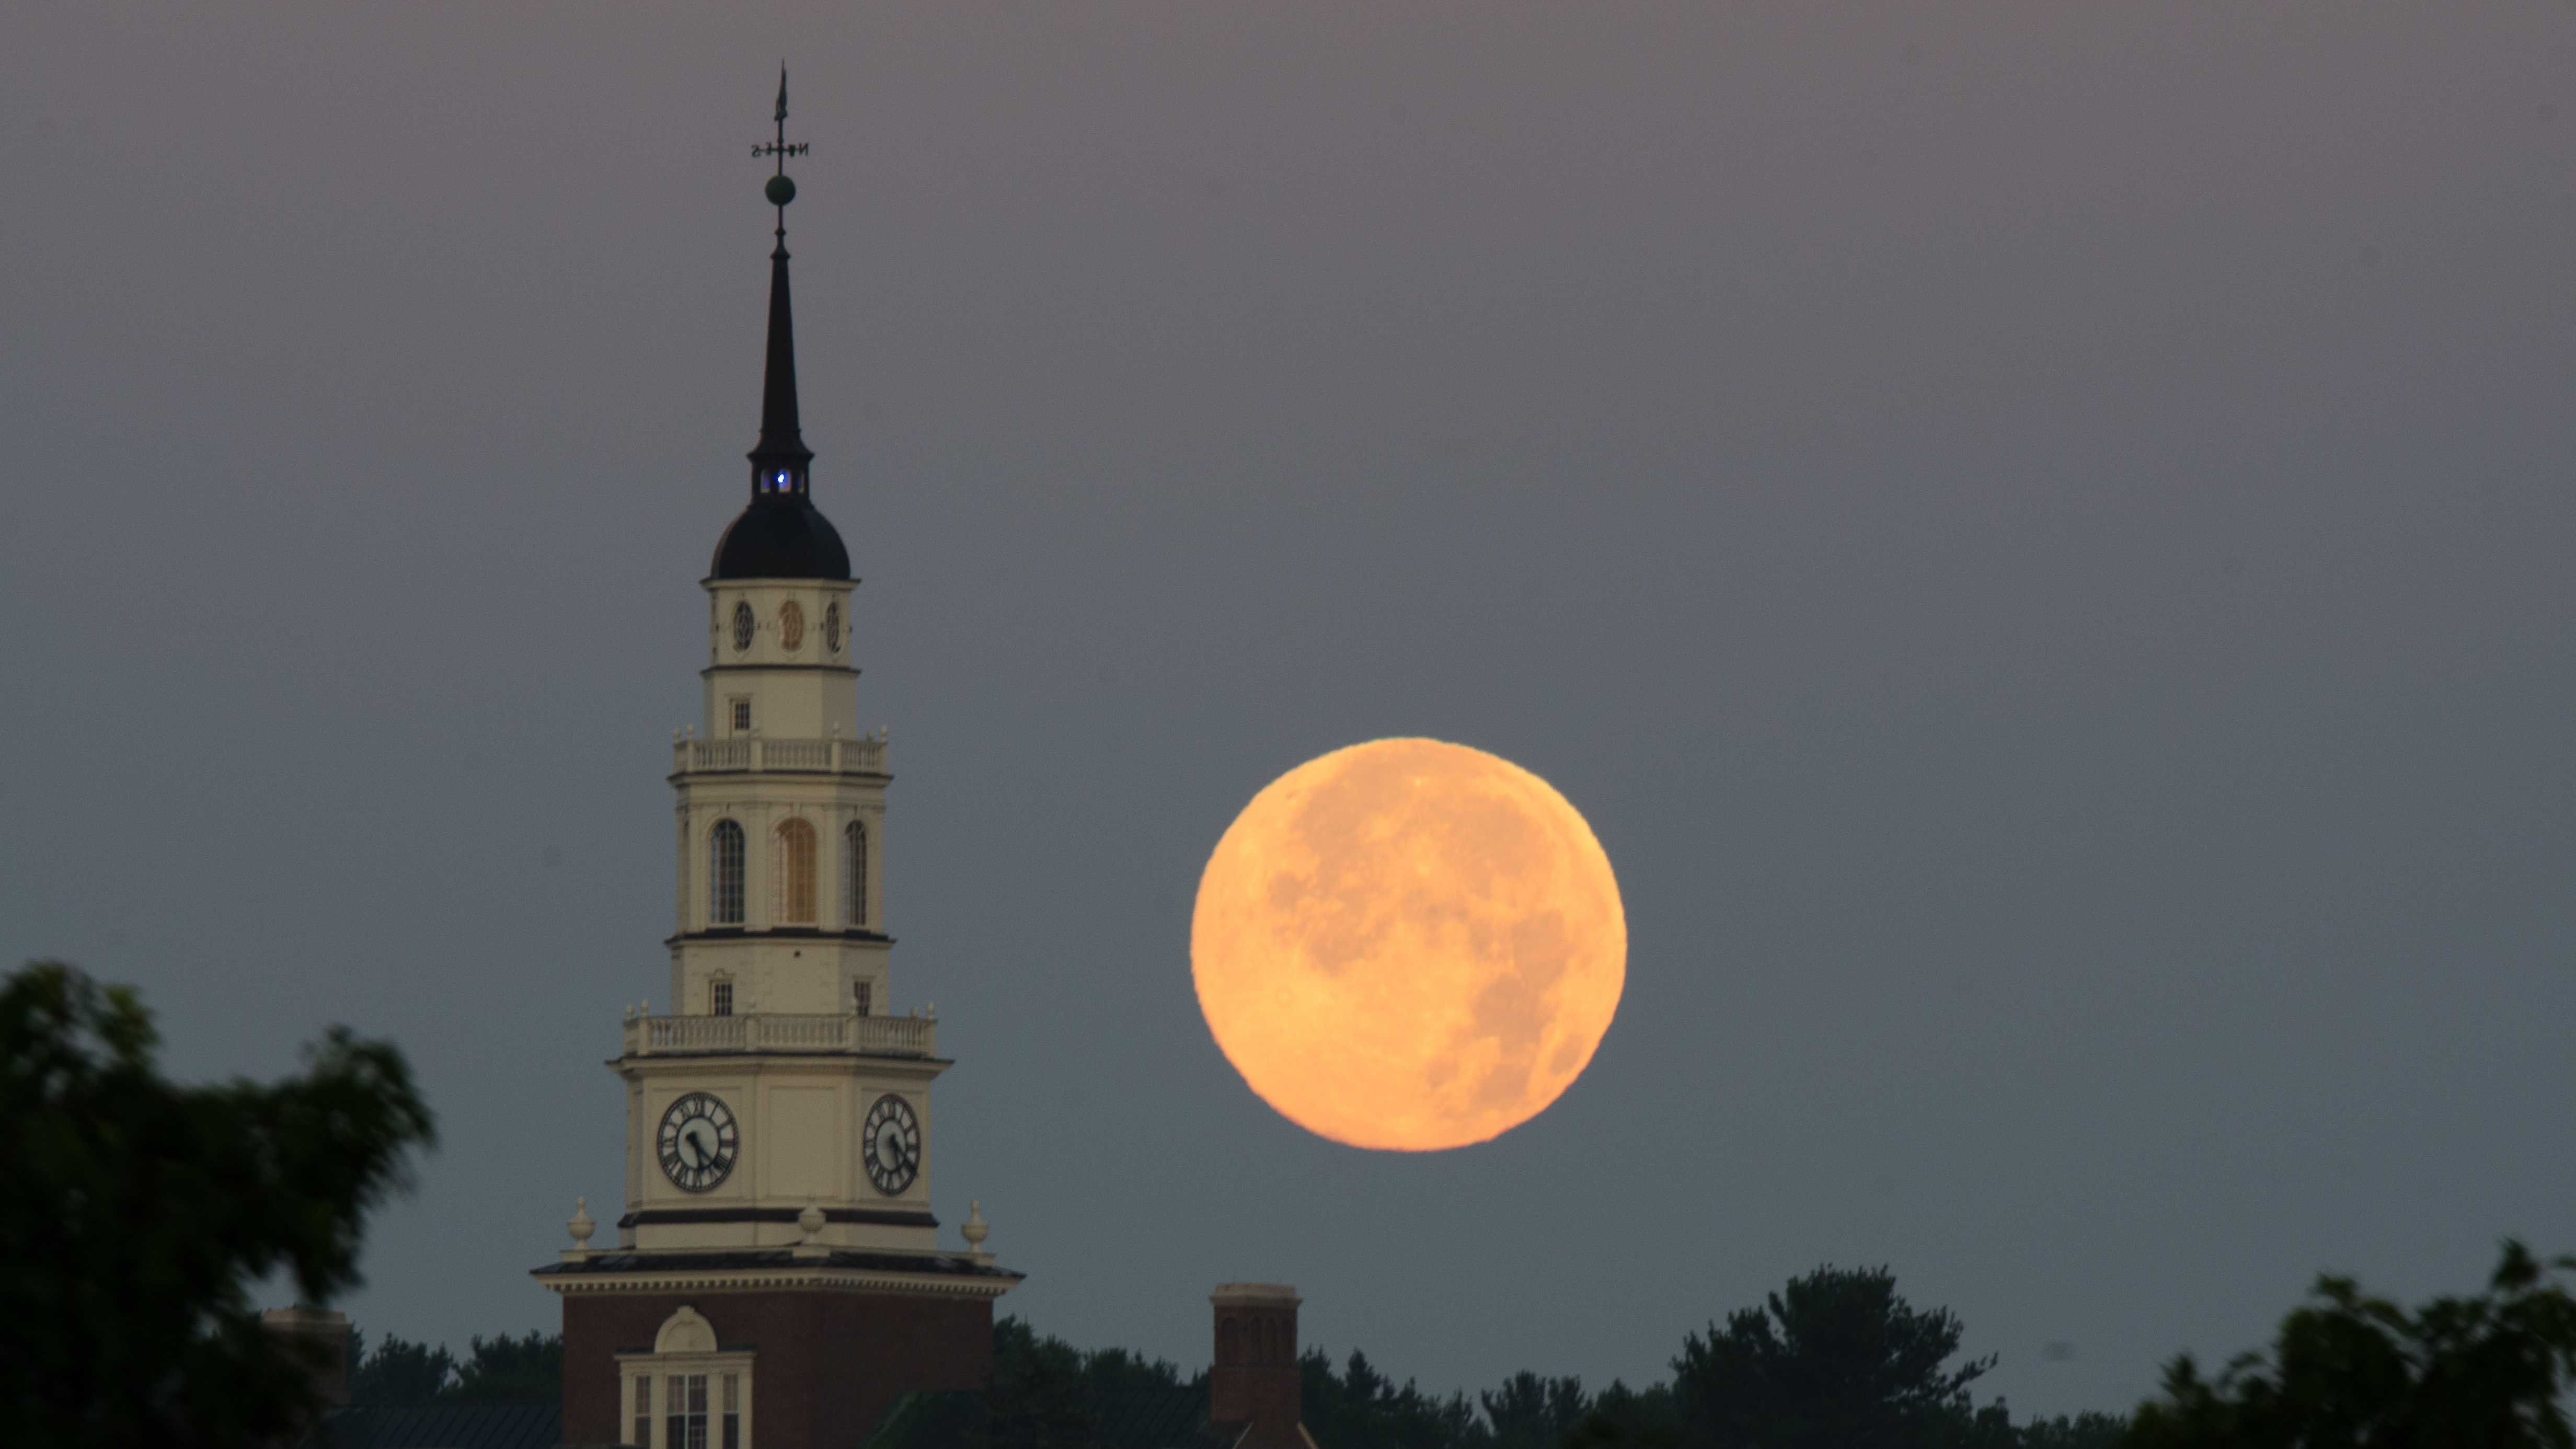 A full moon sets behind a steeple at Colby College.